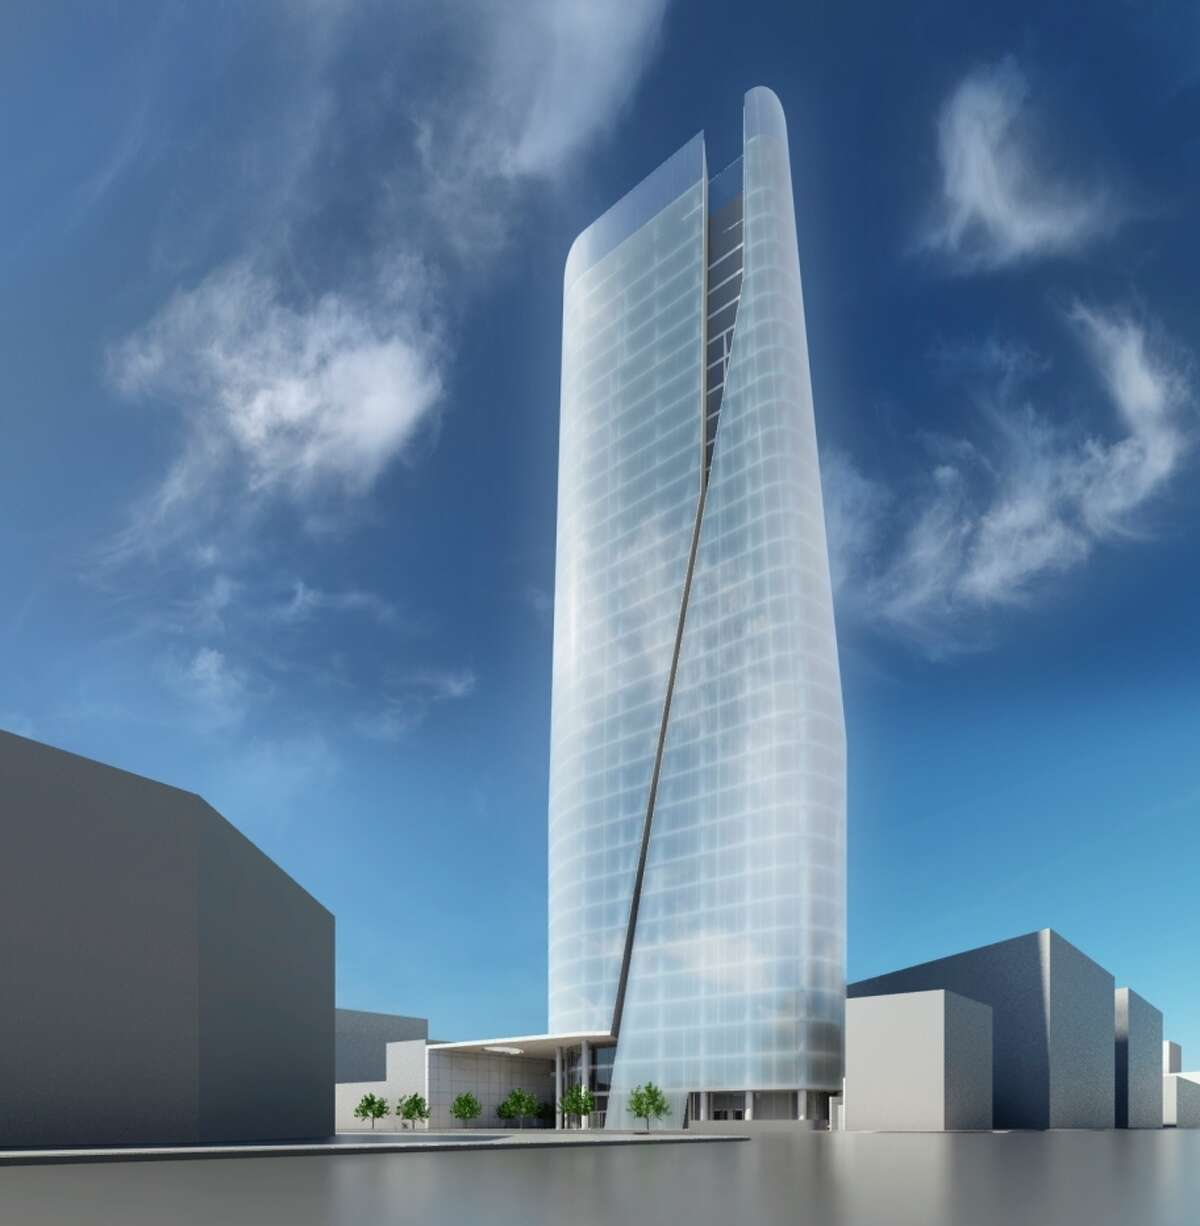 Richard Meier & Partners was planning this tower for the San Francisco site.